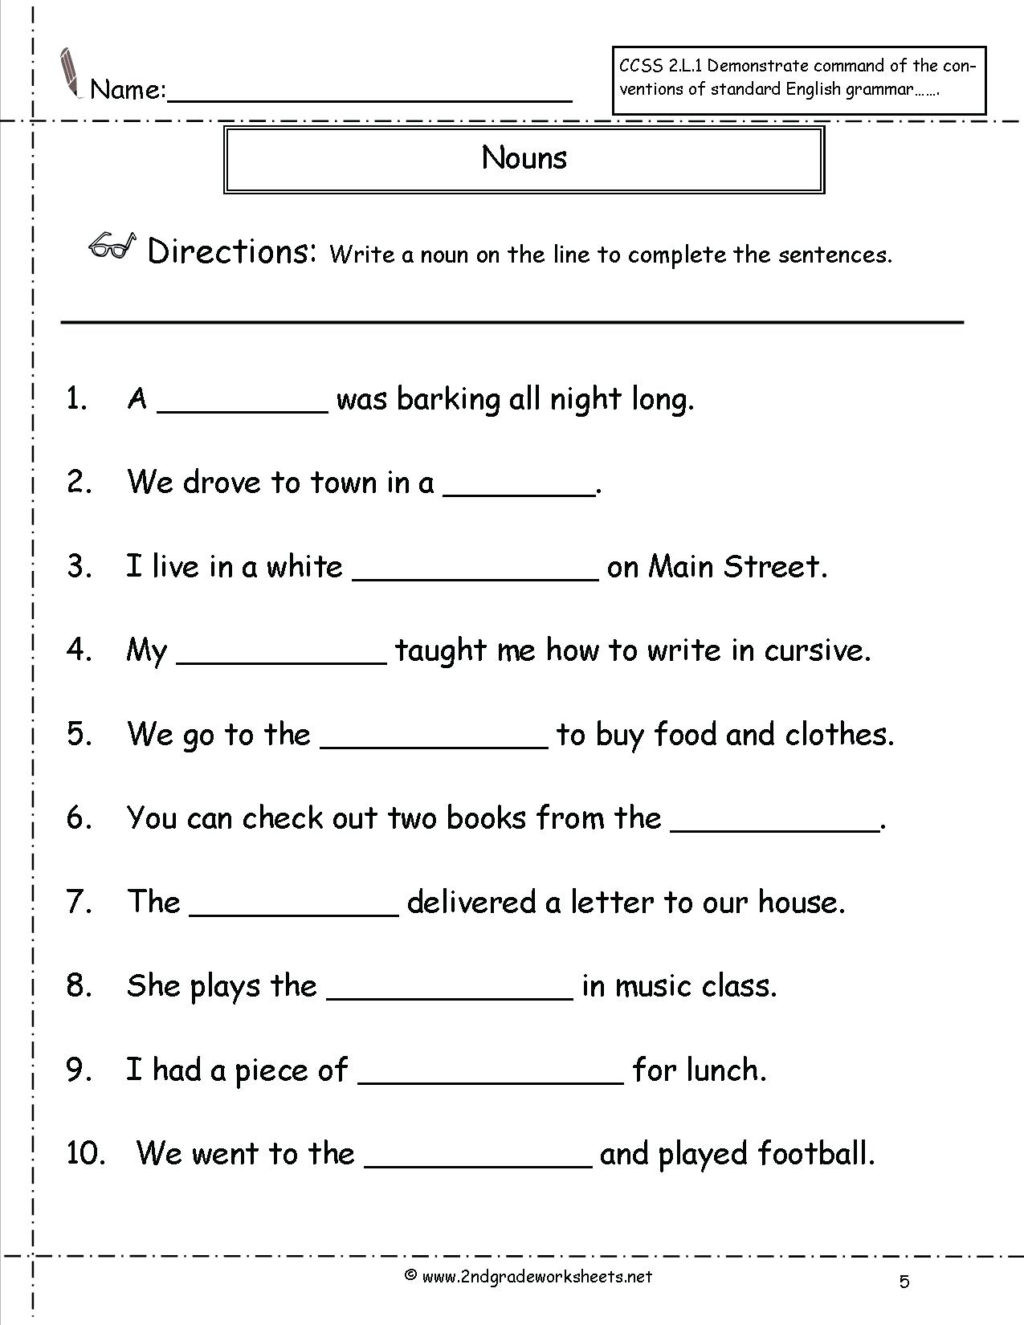 Sentence Correction Worksheets 2nd Grade Worksheet 2nd Grade Reading Prehension Worksheets Pdf